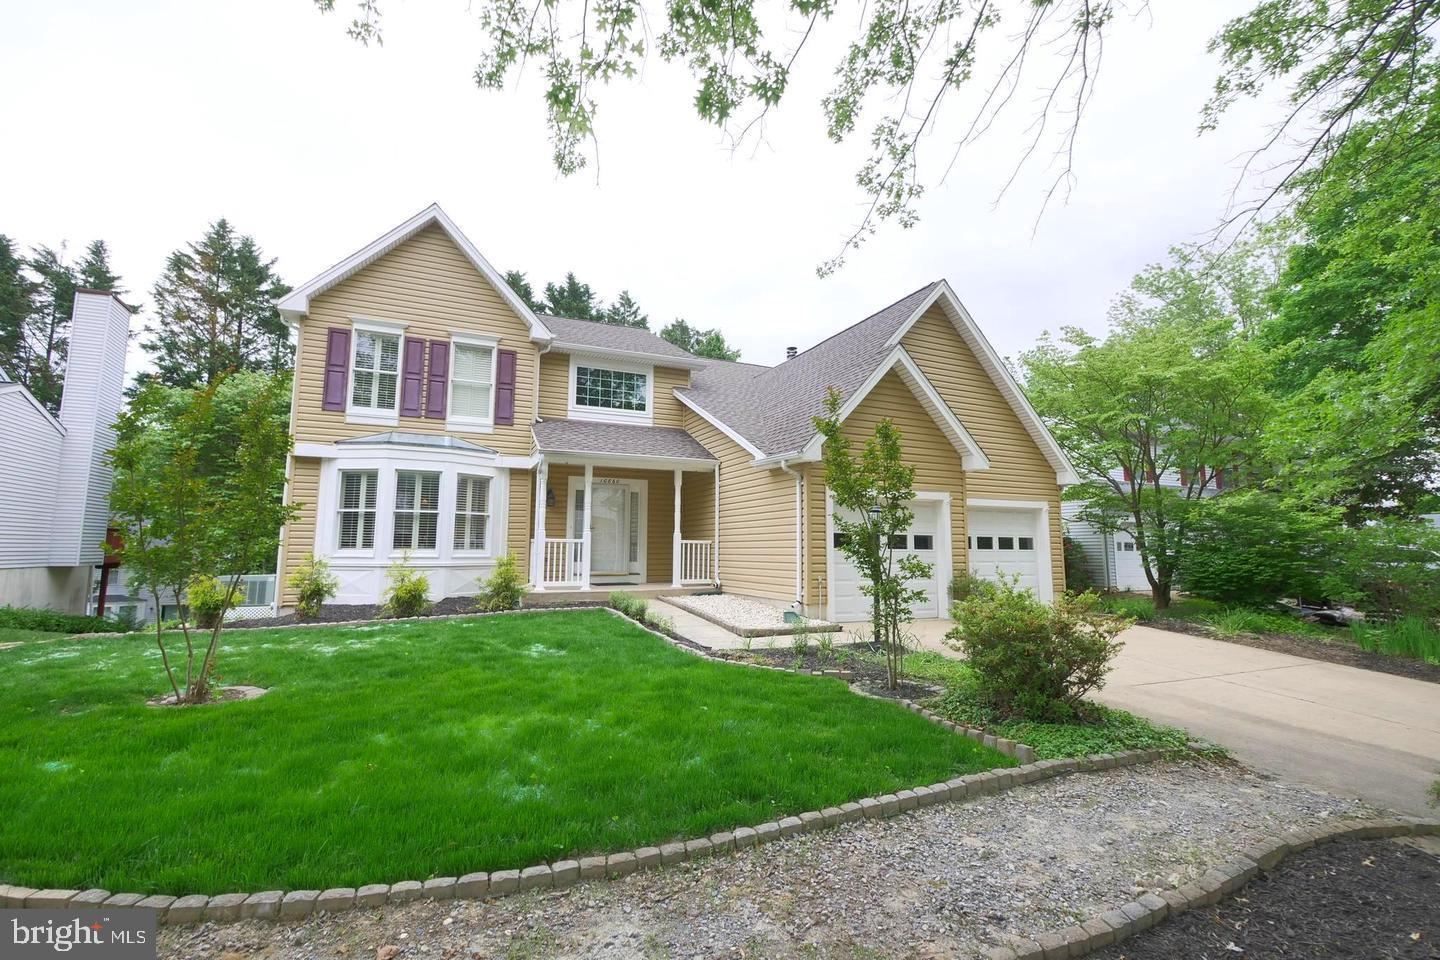 Welcome home! Located in a cul-de-sac in Columbia, this home has everything you're looking for! This